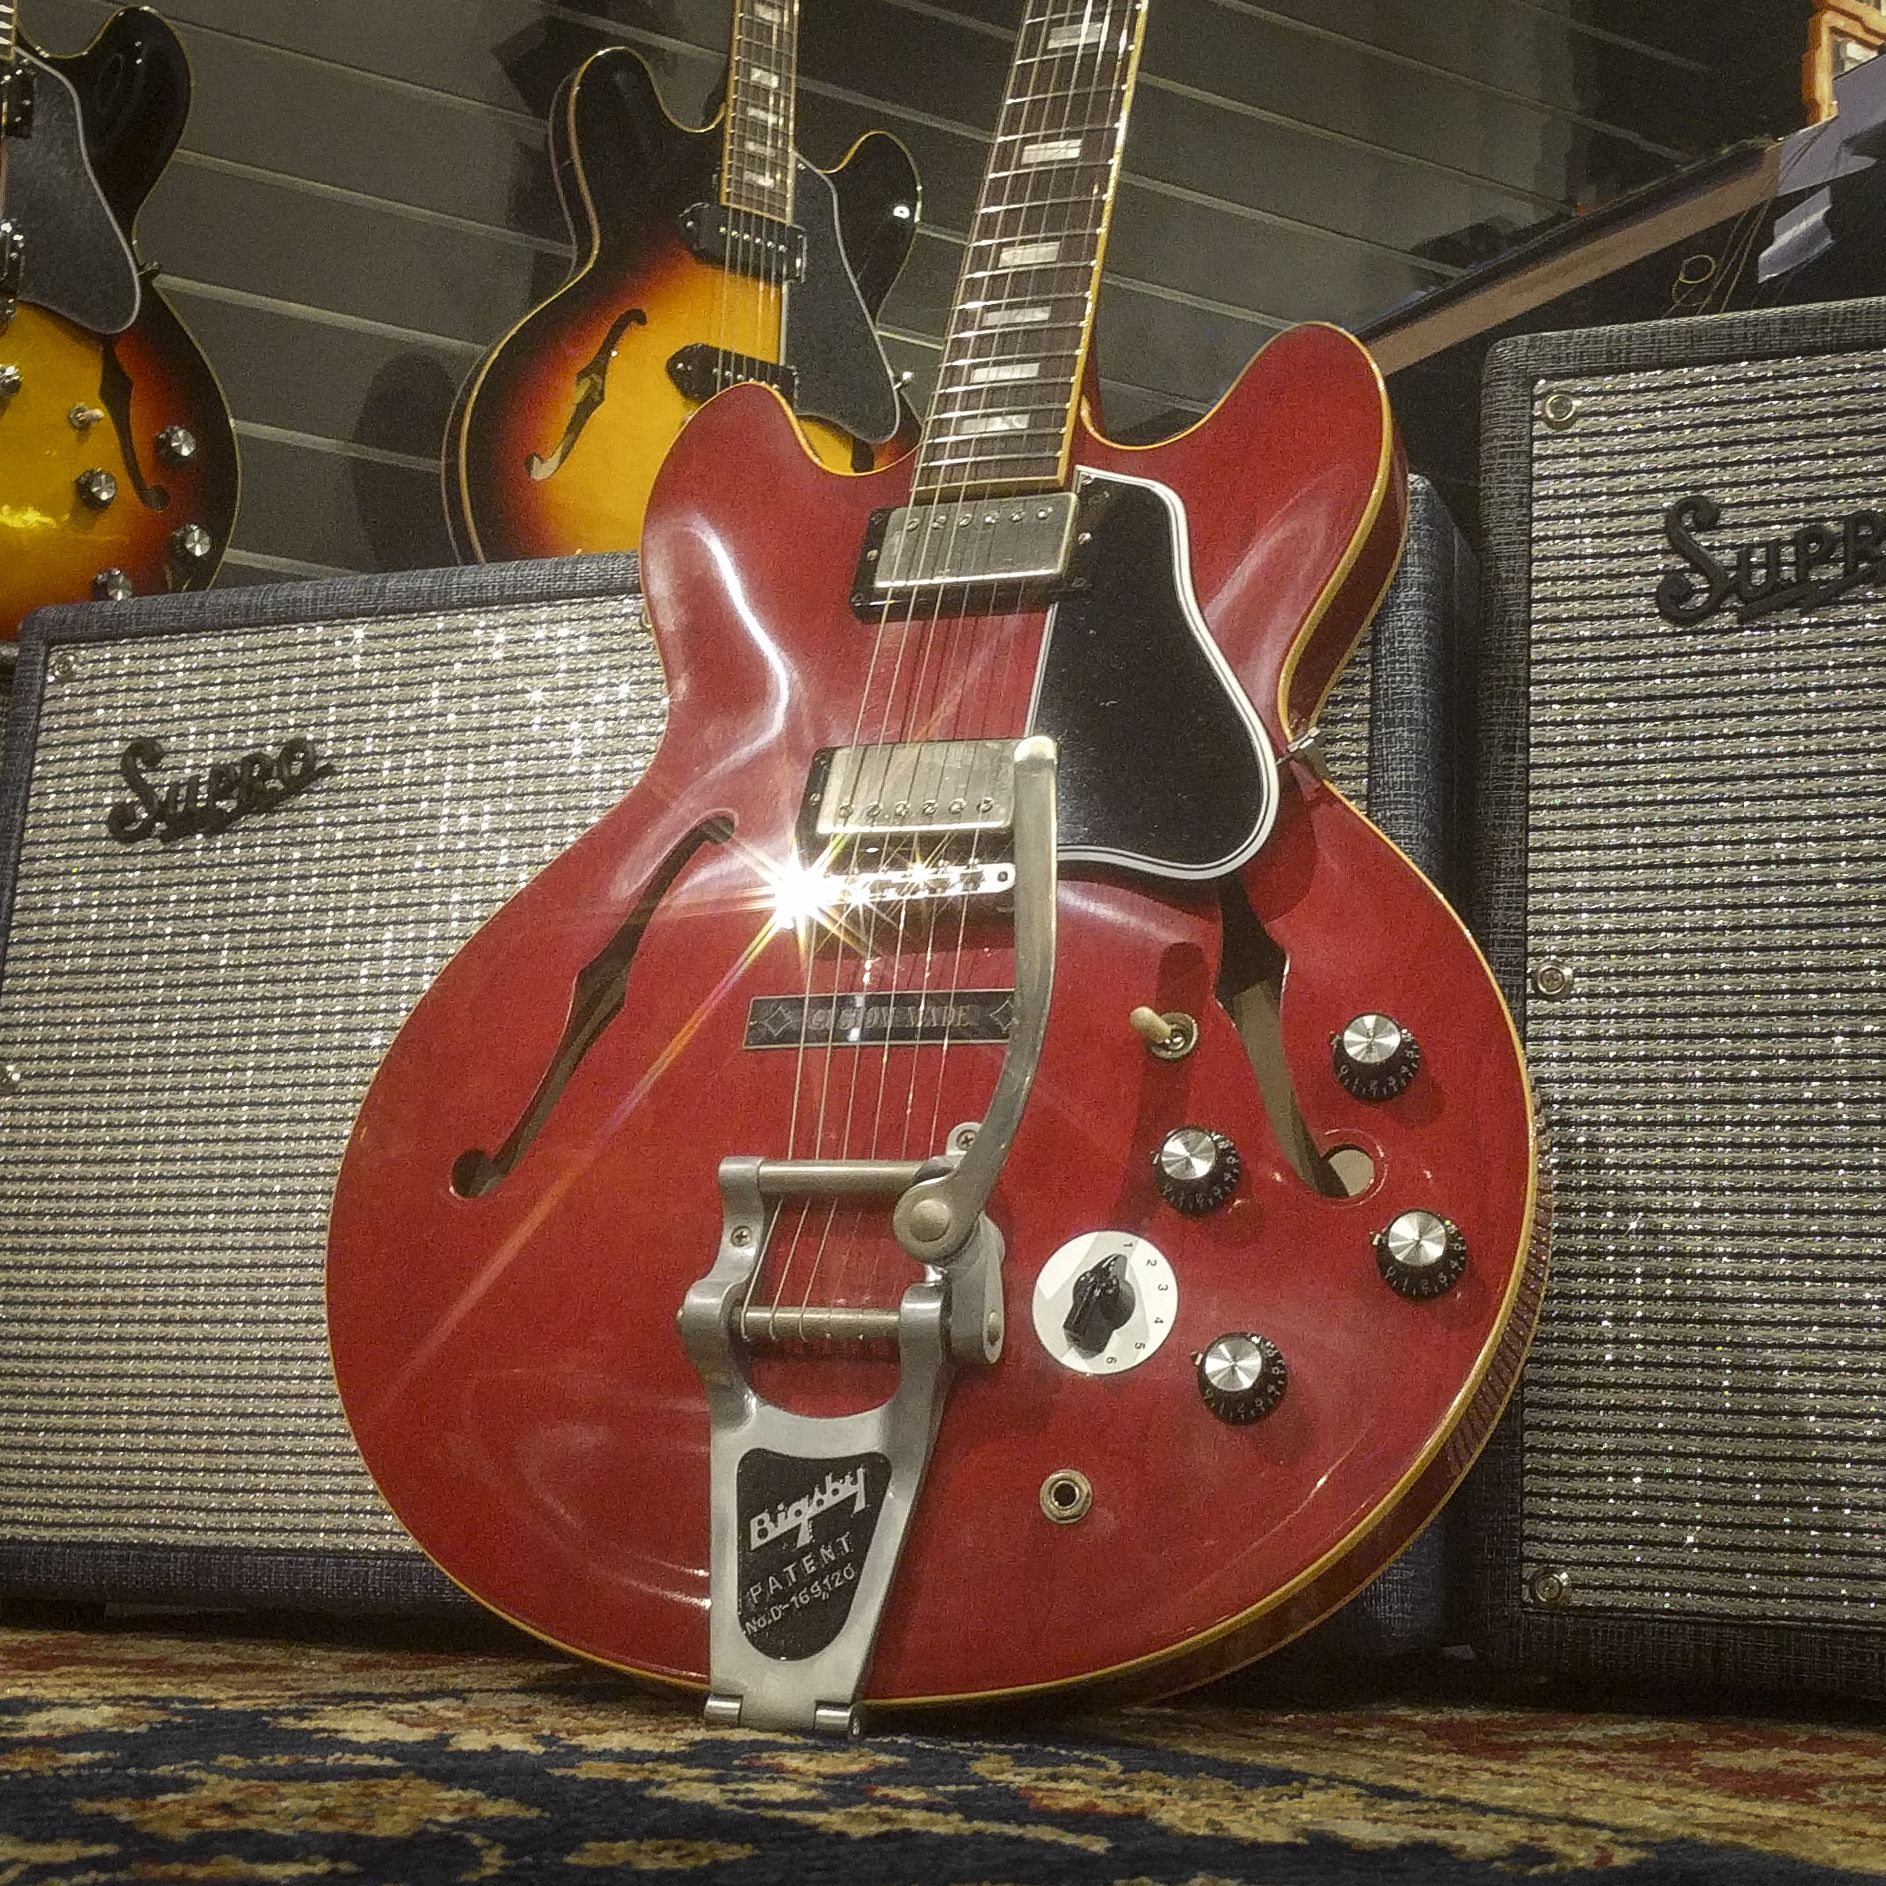 Gibson Is Back 2018 Es 335 1963 Bigsby Varitone Limited Edition Sixties Cherry Gibson Gibsonguitars Gibsones G Gibson Guitars Electric Guitar Guitar